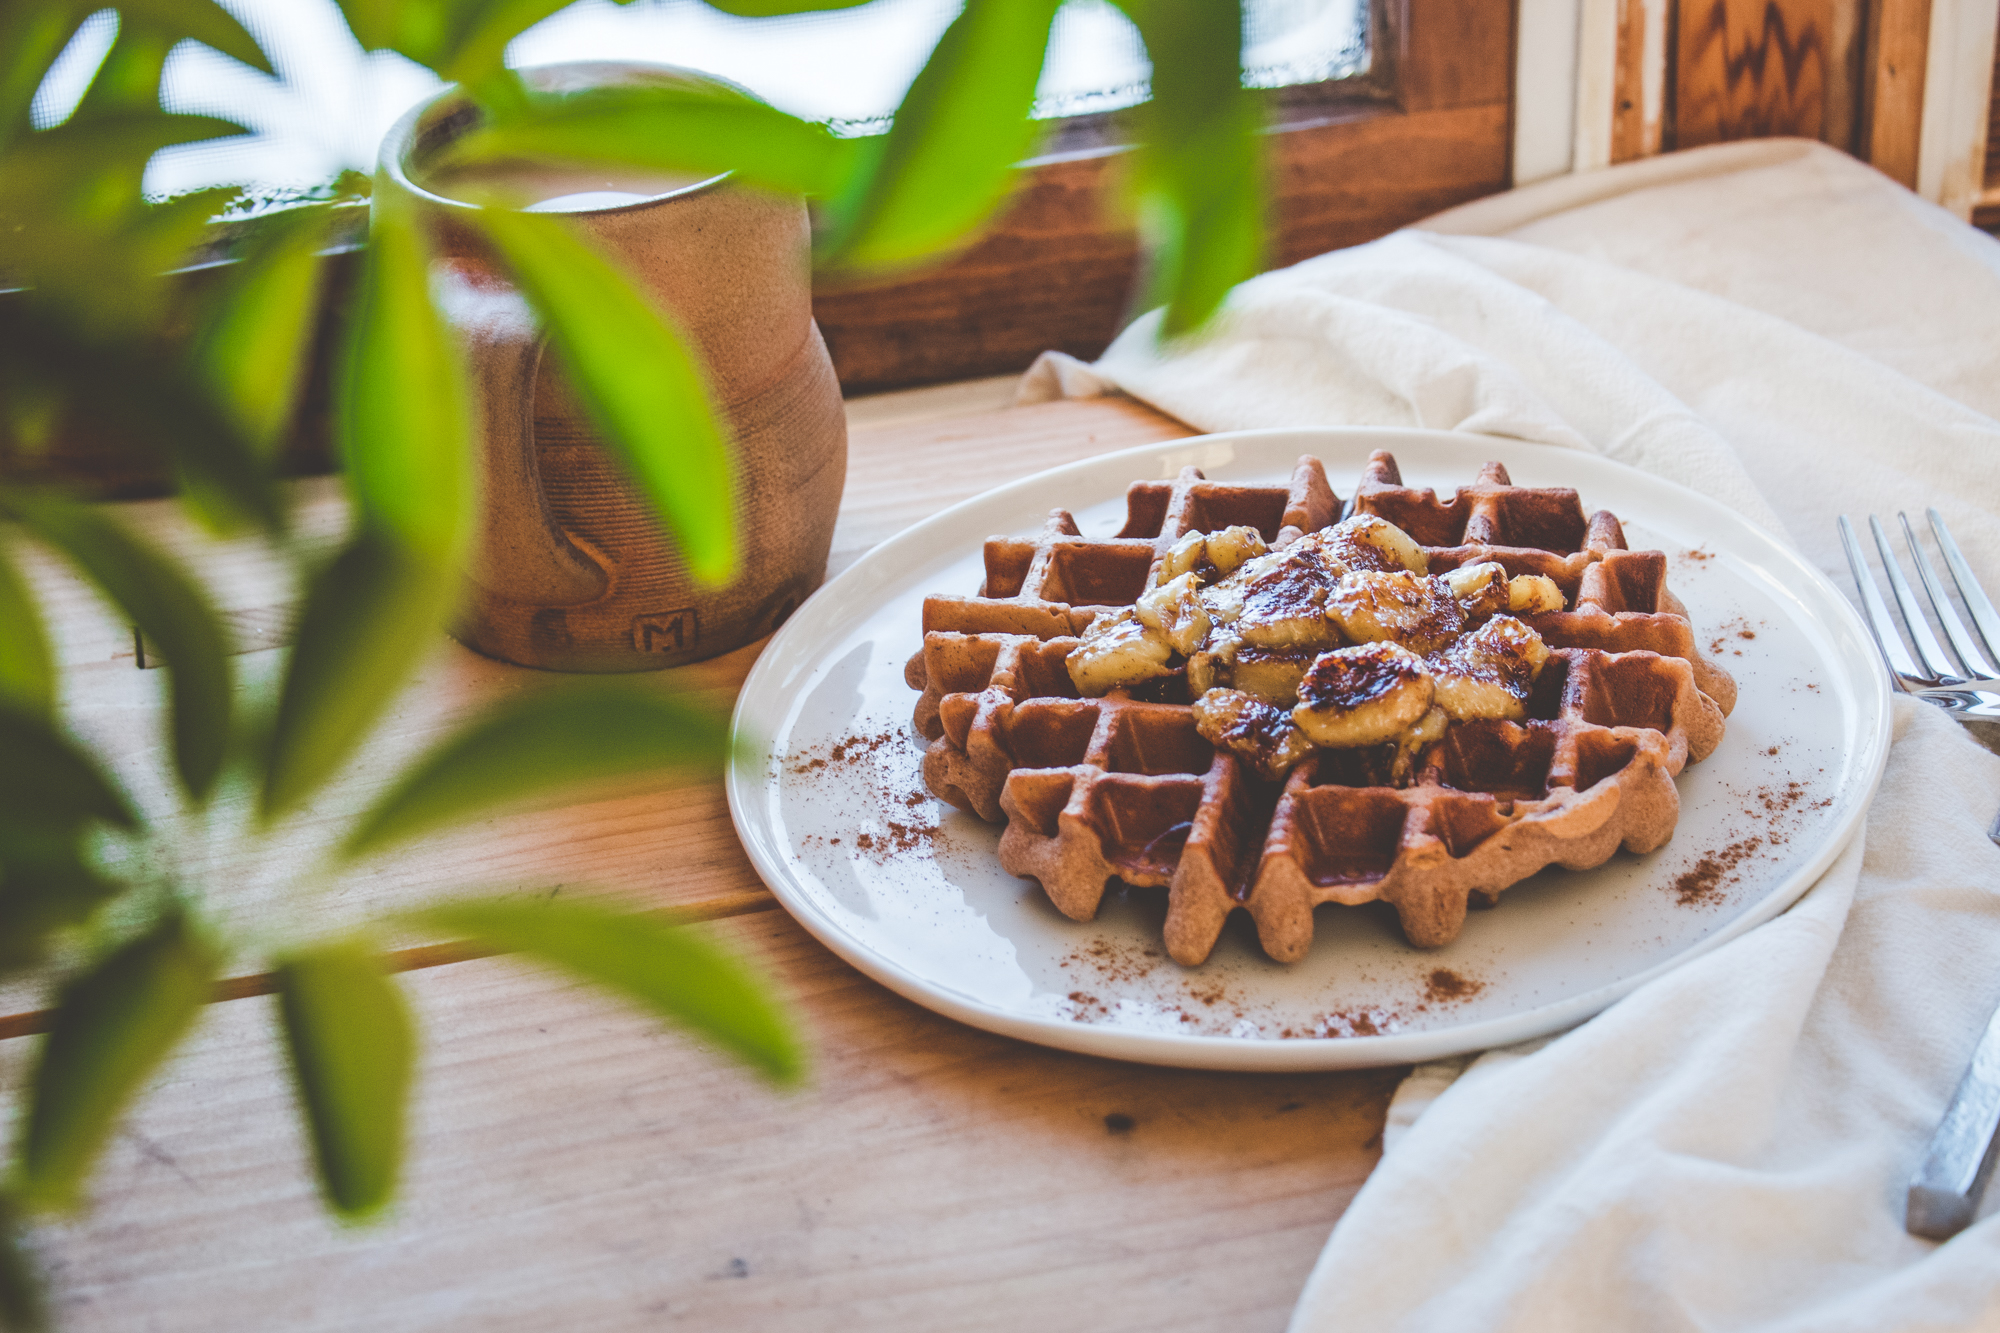 Fluffy Gluten-Free Waffles with Caramelized Bananas